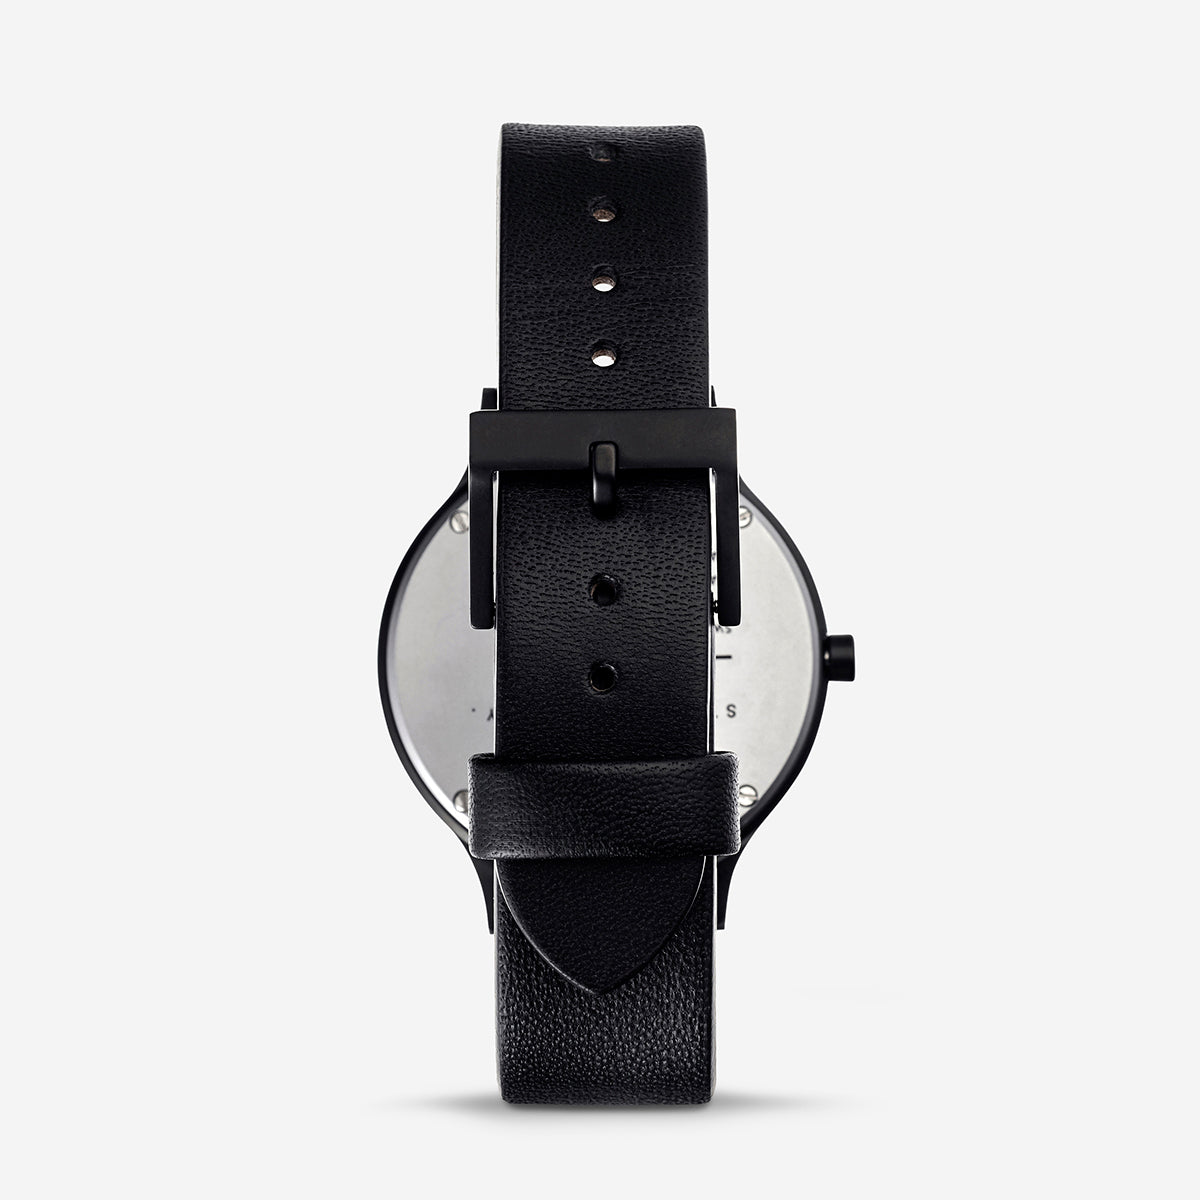 Status Anxiety Inertia Leather Unisex Watch - Black Face/Black Strap